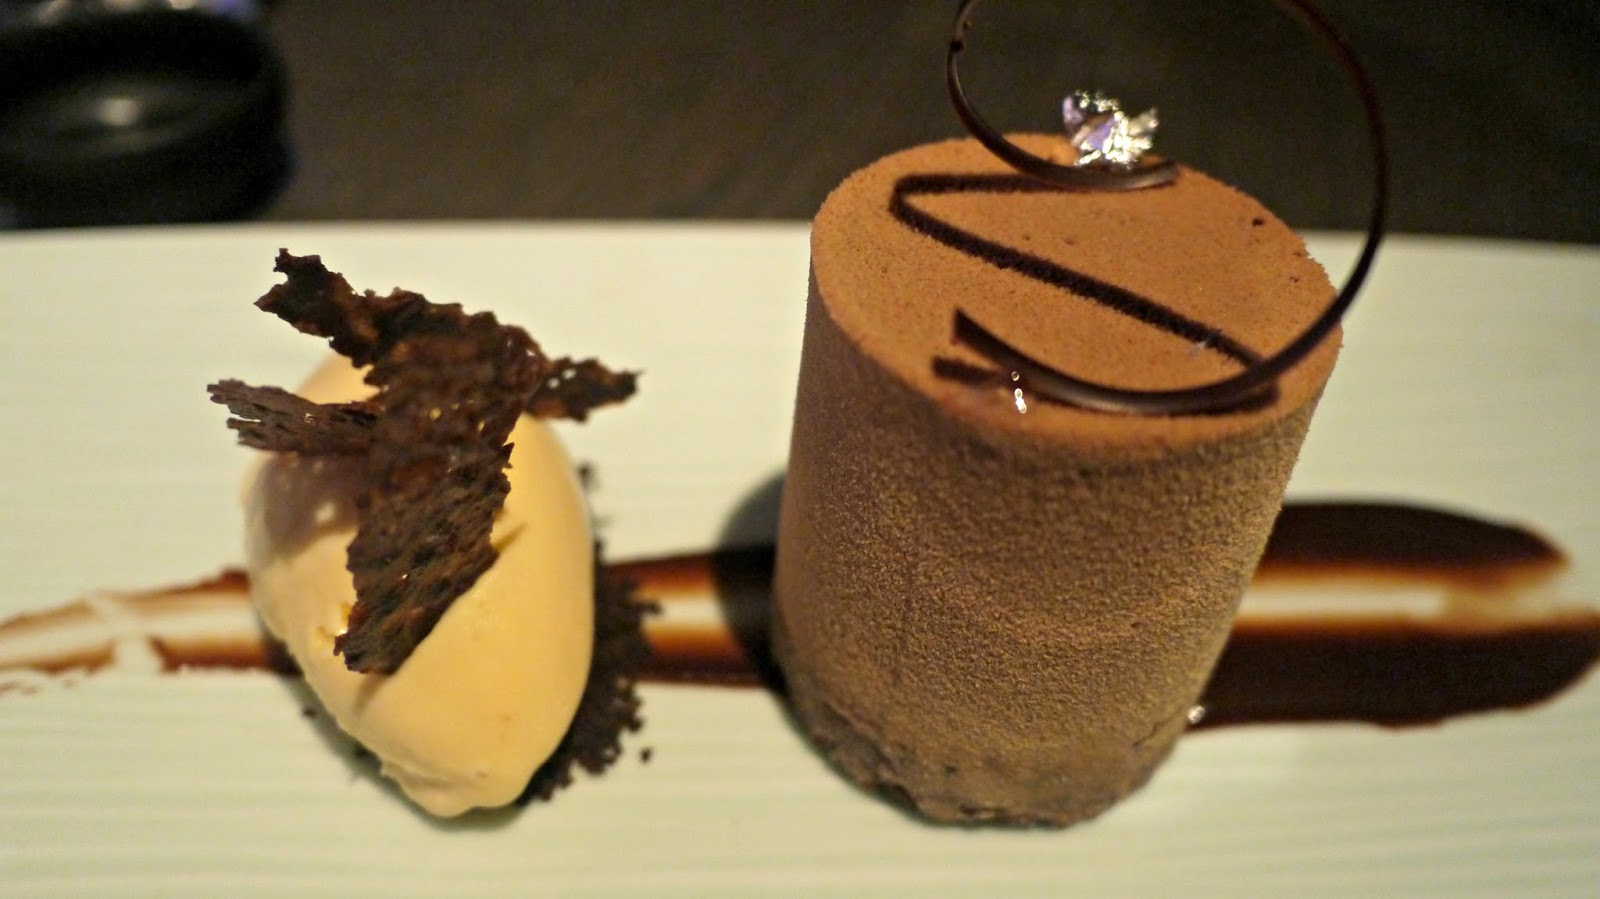 yauatcha jasmine honey chocolate dessert